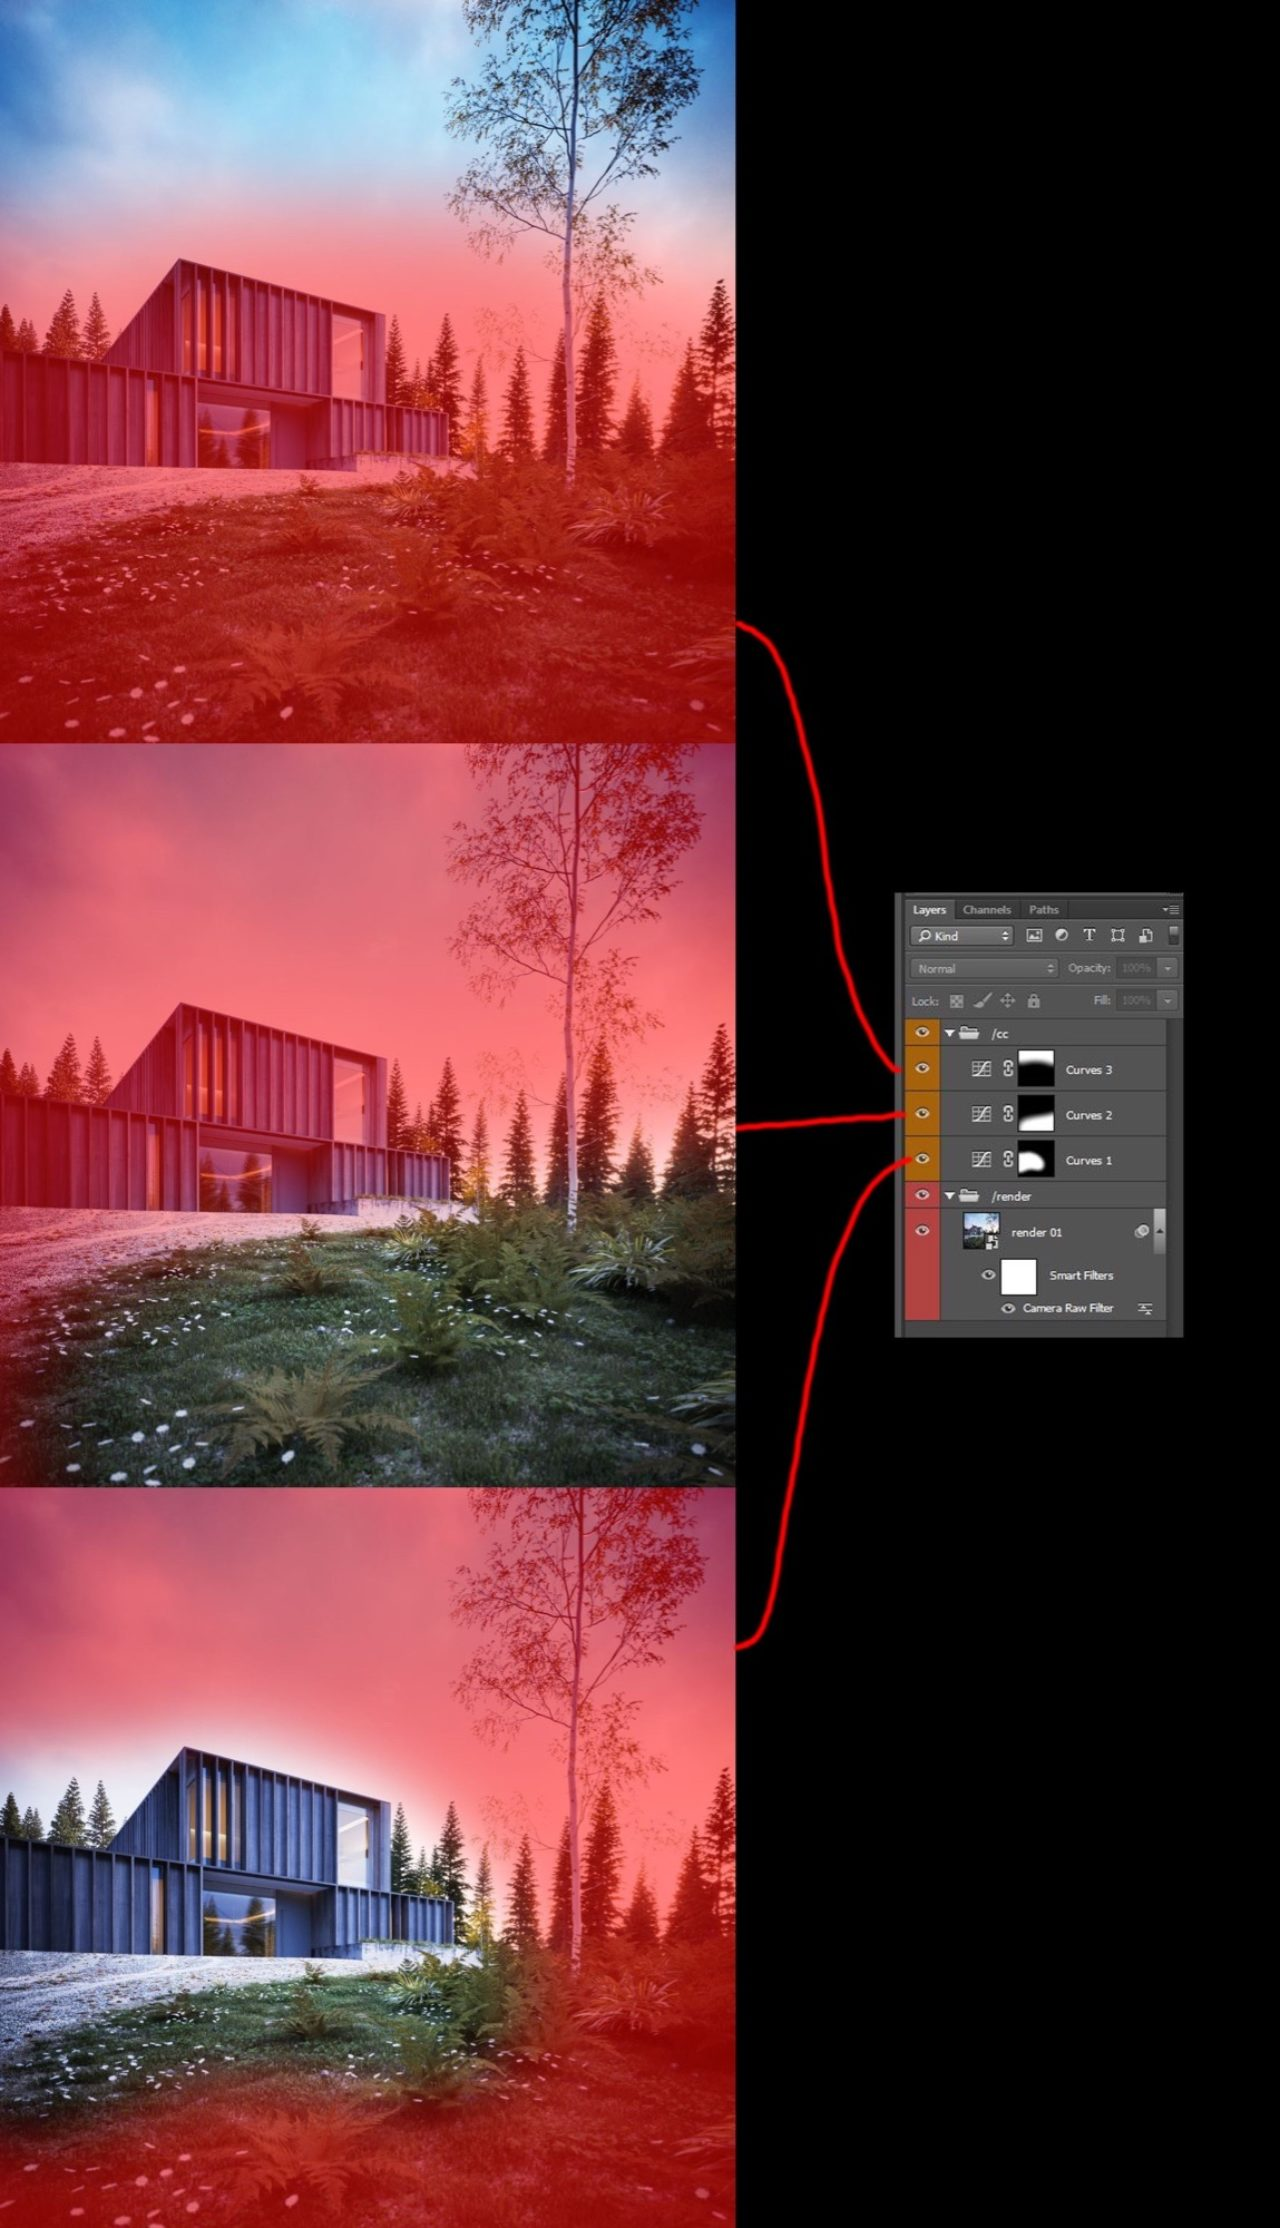 Carey House tutorial 09 - Post Production